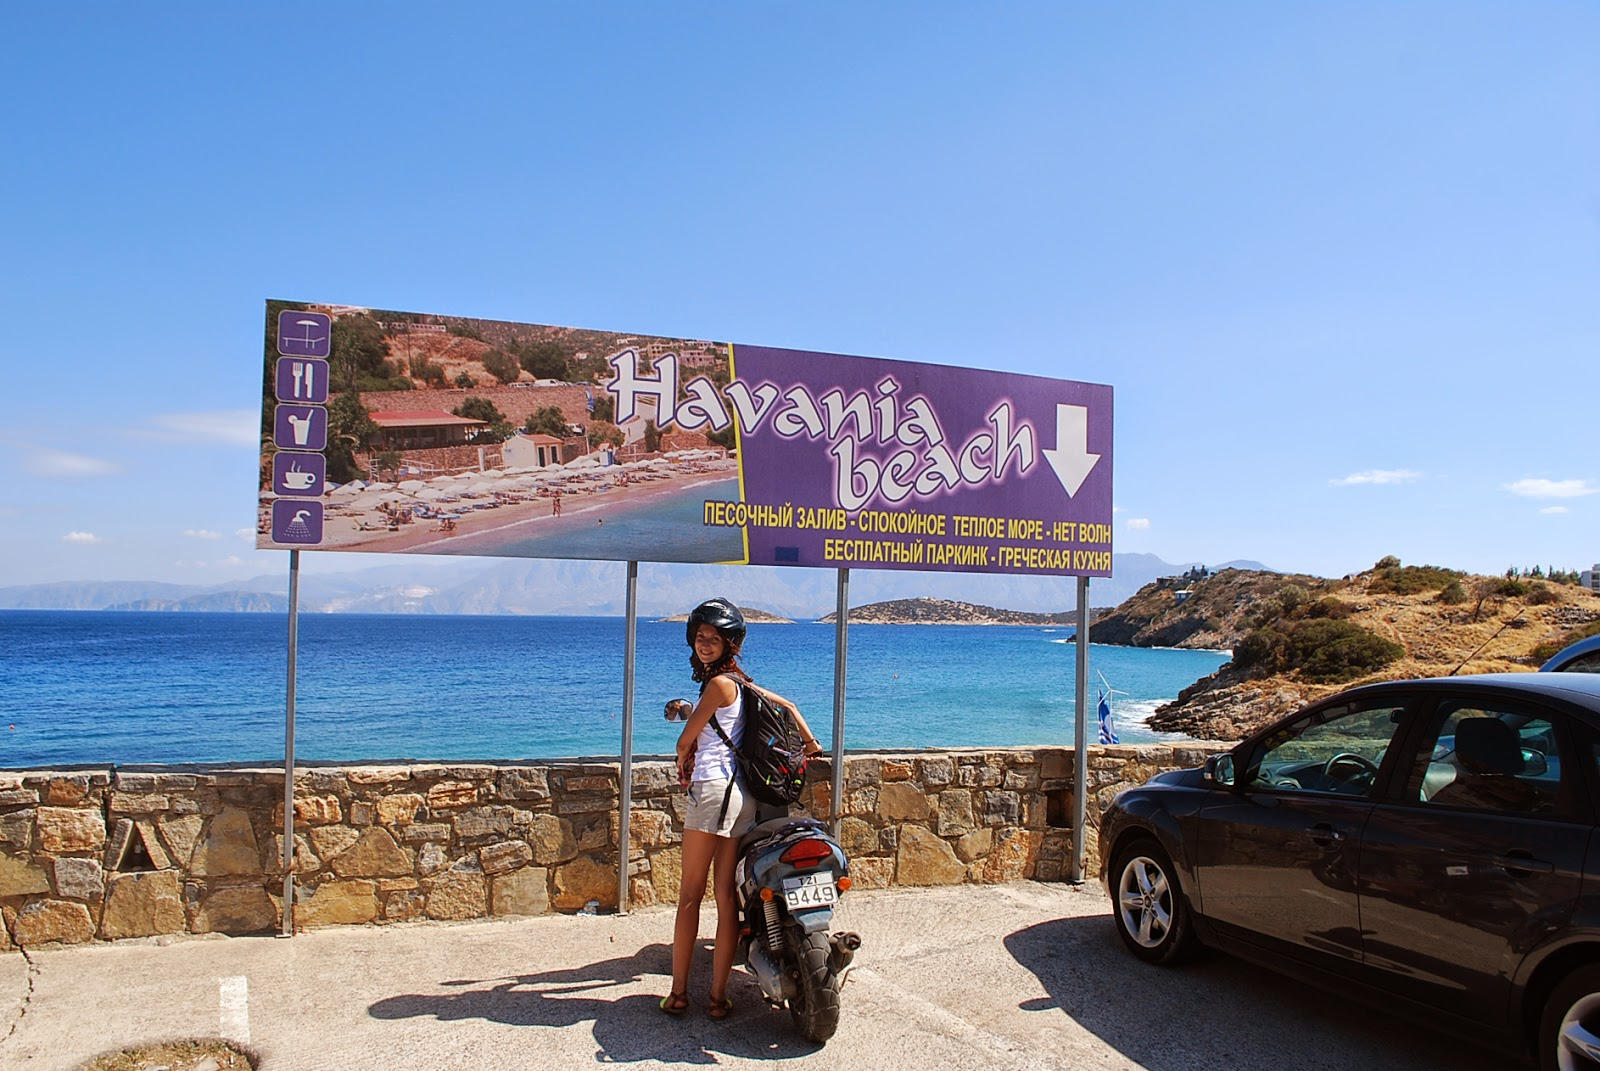 Пляж Гавания, Крит, Греция. Havania beach, Crete, Greece.